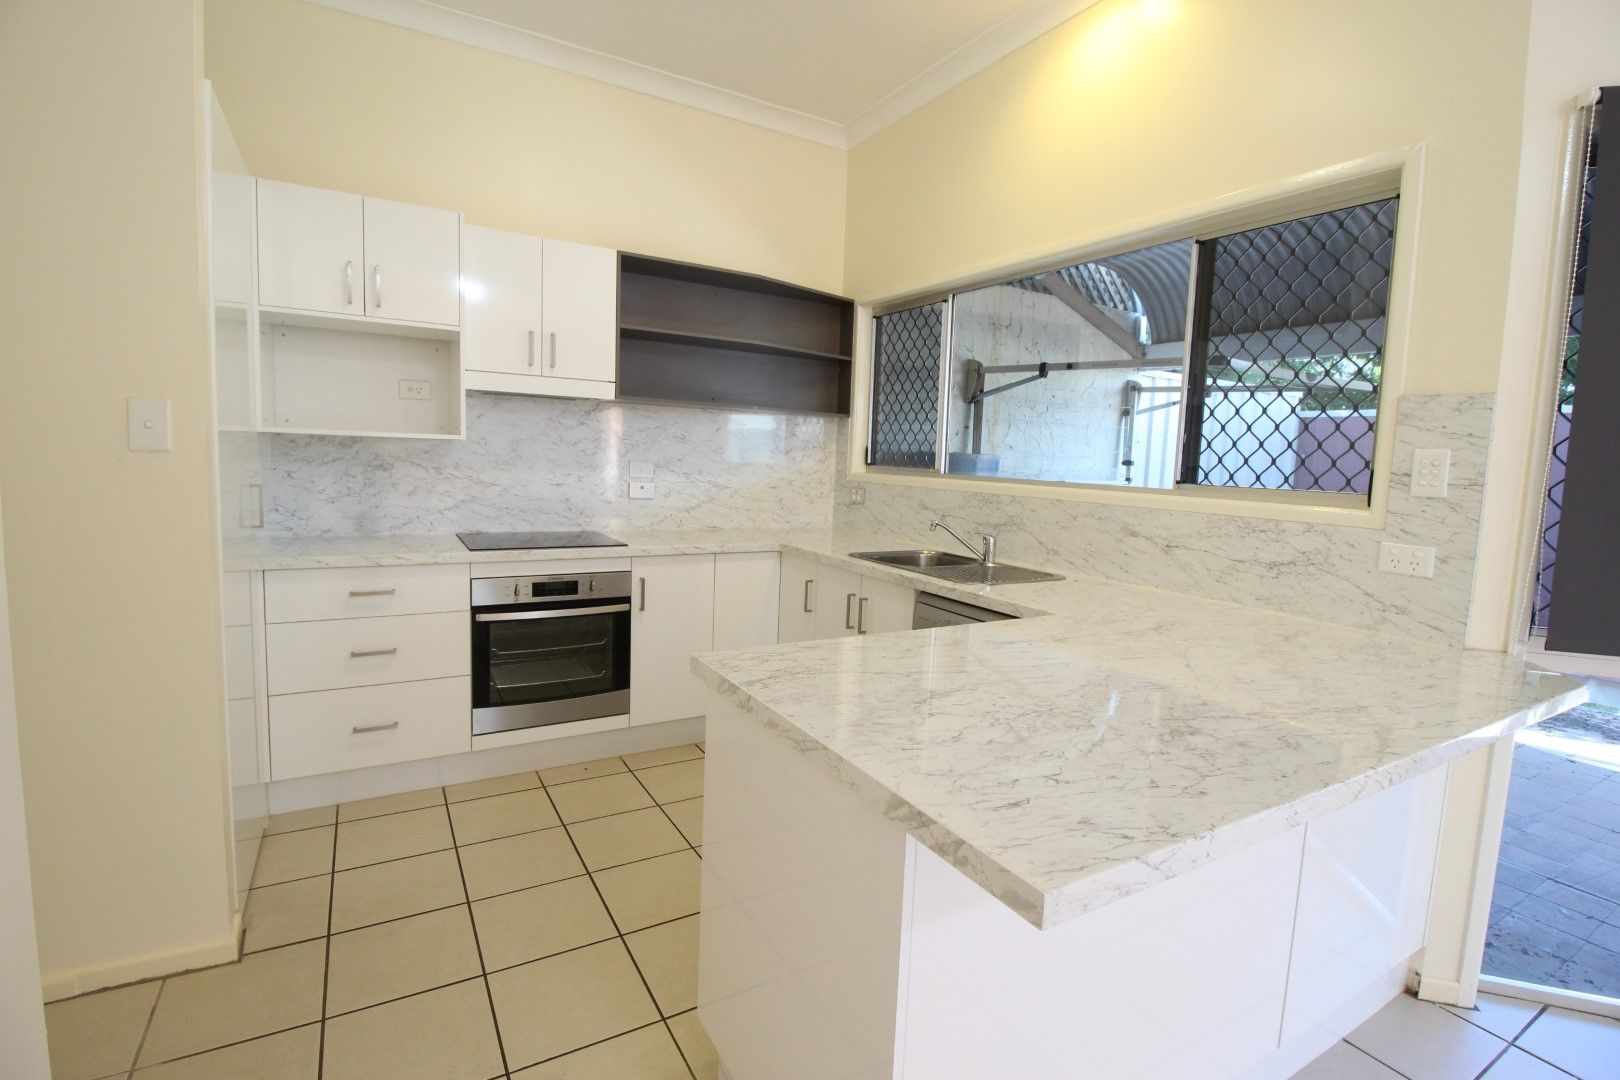 5/37 Hackett Terrace, Richmond Hill QLD 4820, Image 0